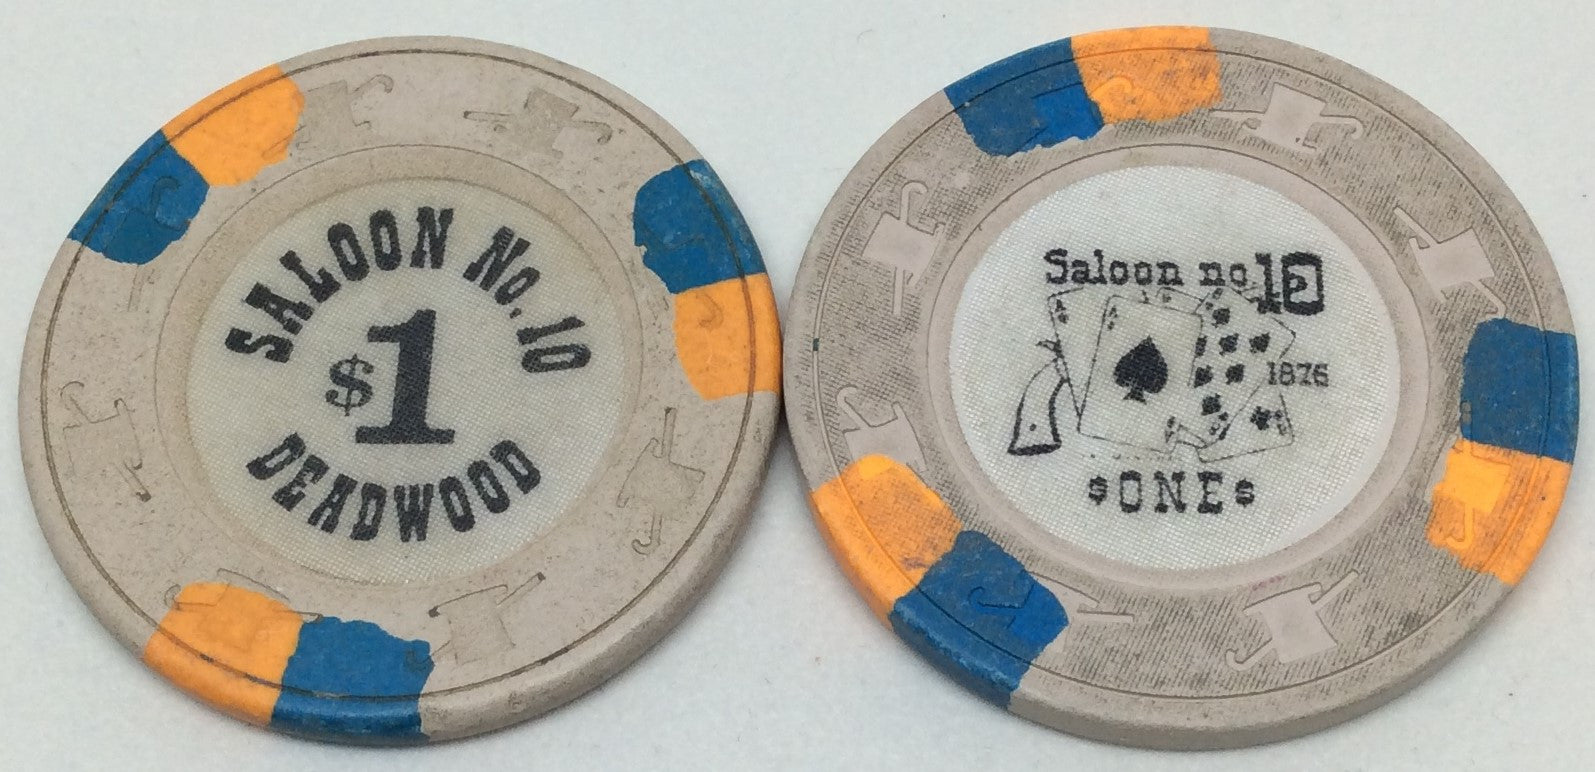 Saloon No.10 Casino Deadwood $1 Chip